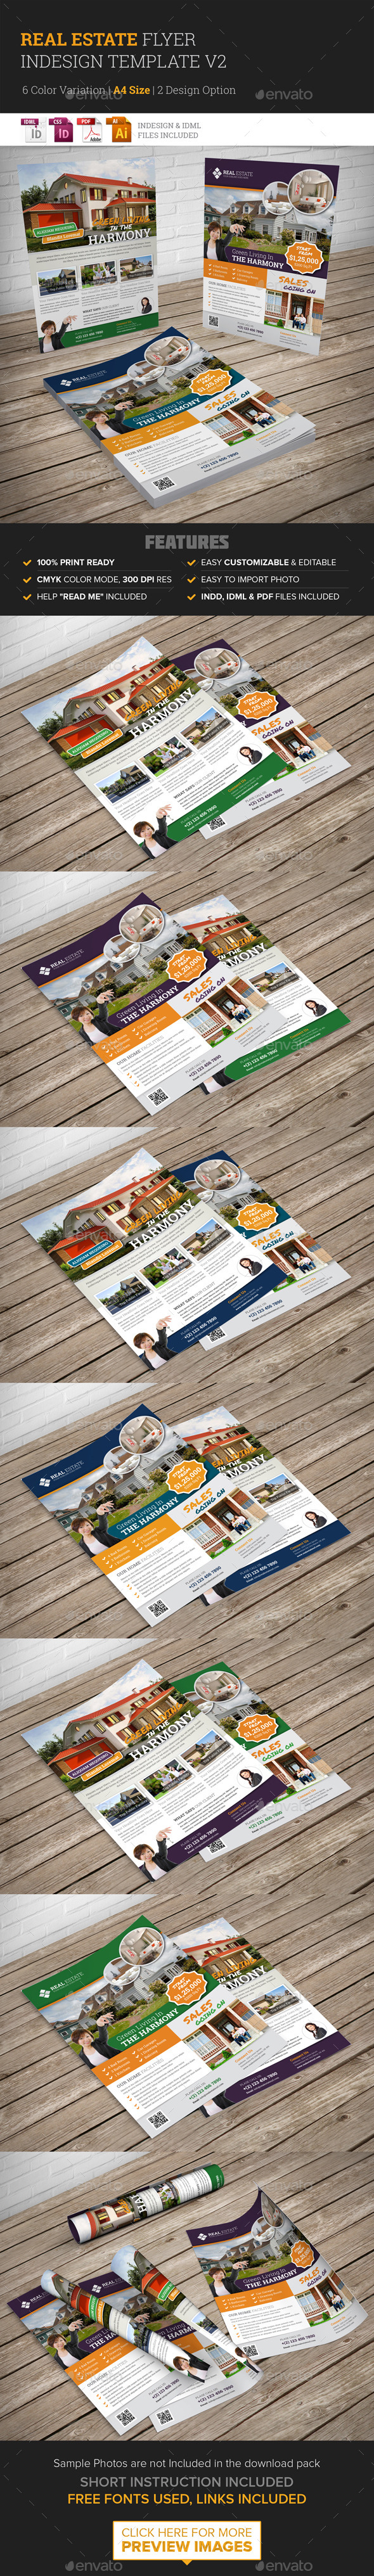 GraphicRiver Real Estate Flyer Indesign Template v2 10266475